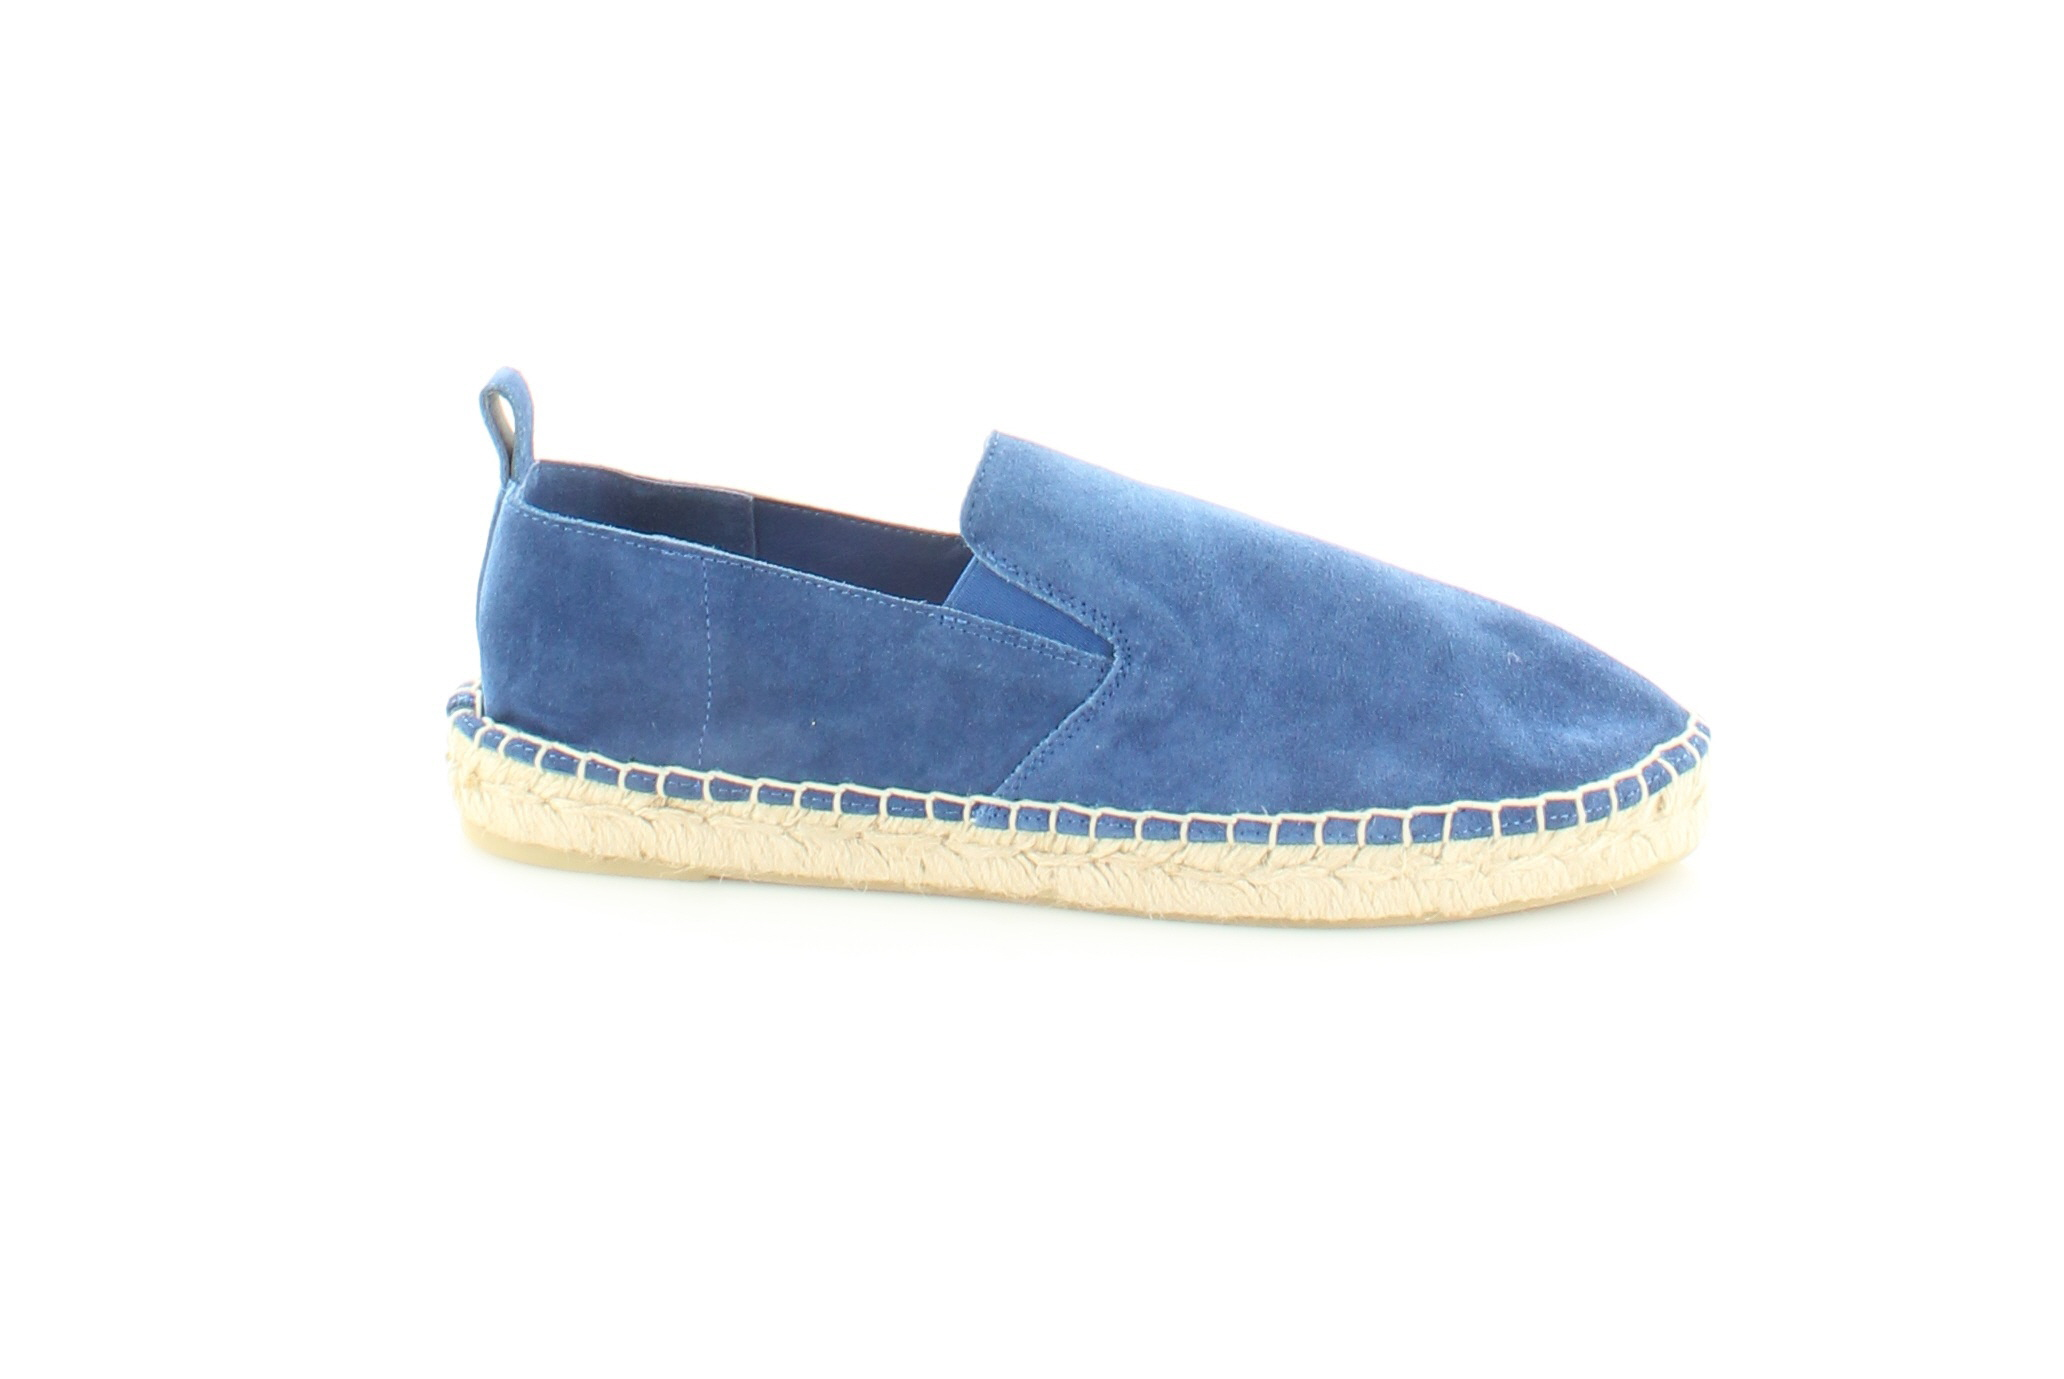 VINCE New Robin bleu femmes chaussures Taille Taille Taille 8 M Flats MSRP  225 876512